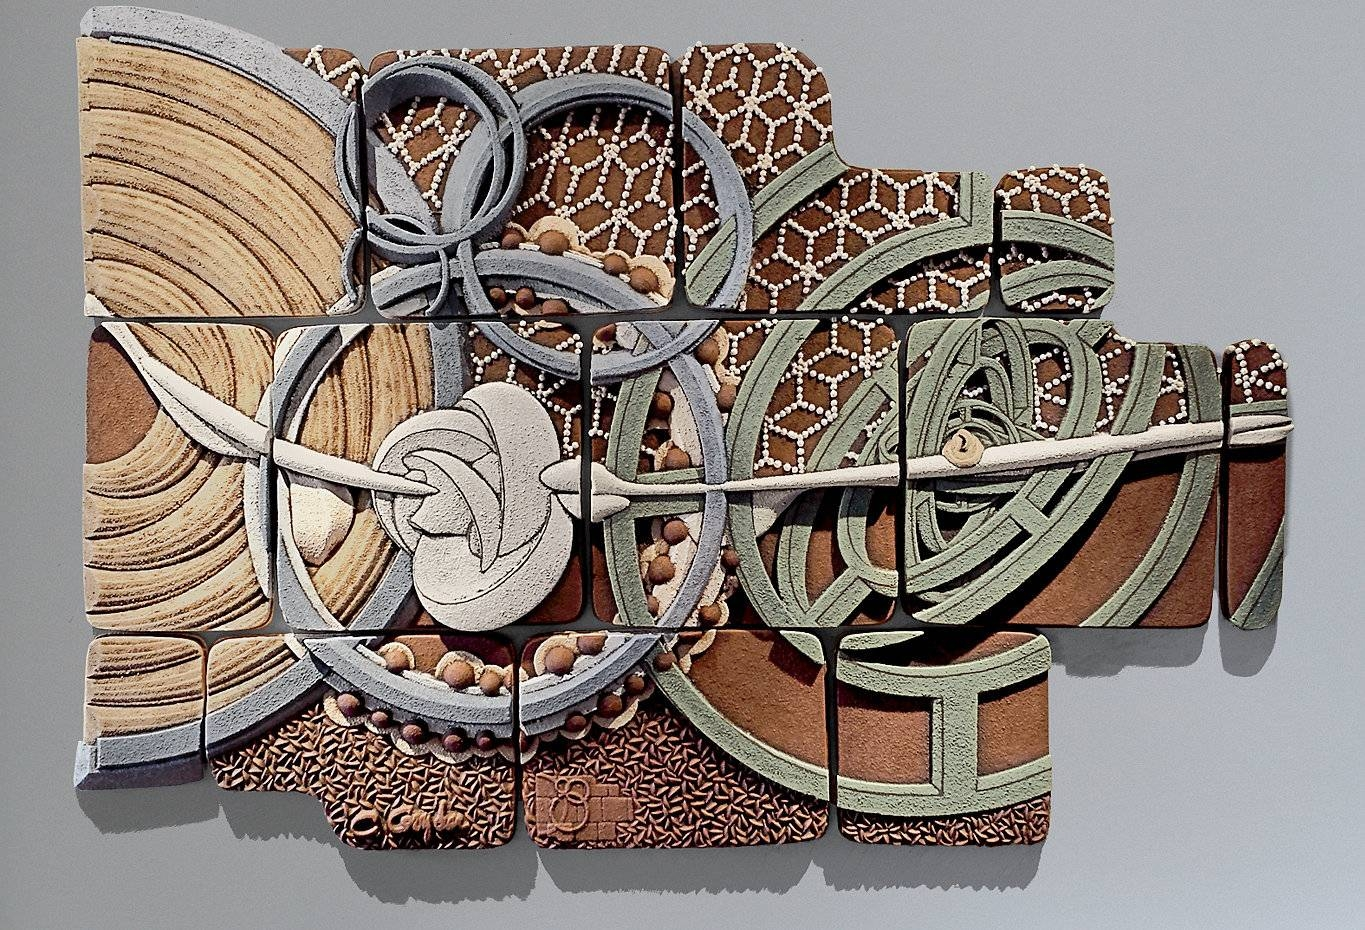 Outdoor Wall Decor Ceramic | Trellischicago Throughout Most Up To Date Outdoor Wall Sculpture Art (View 3 of 20)